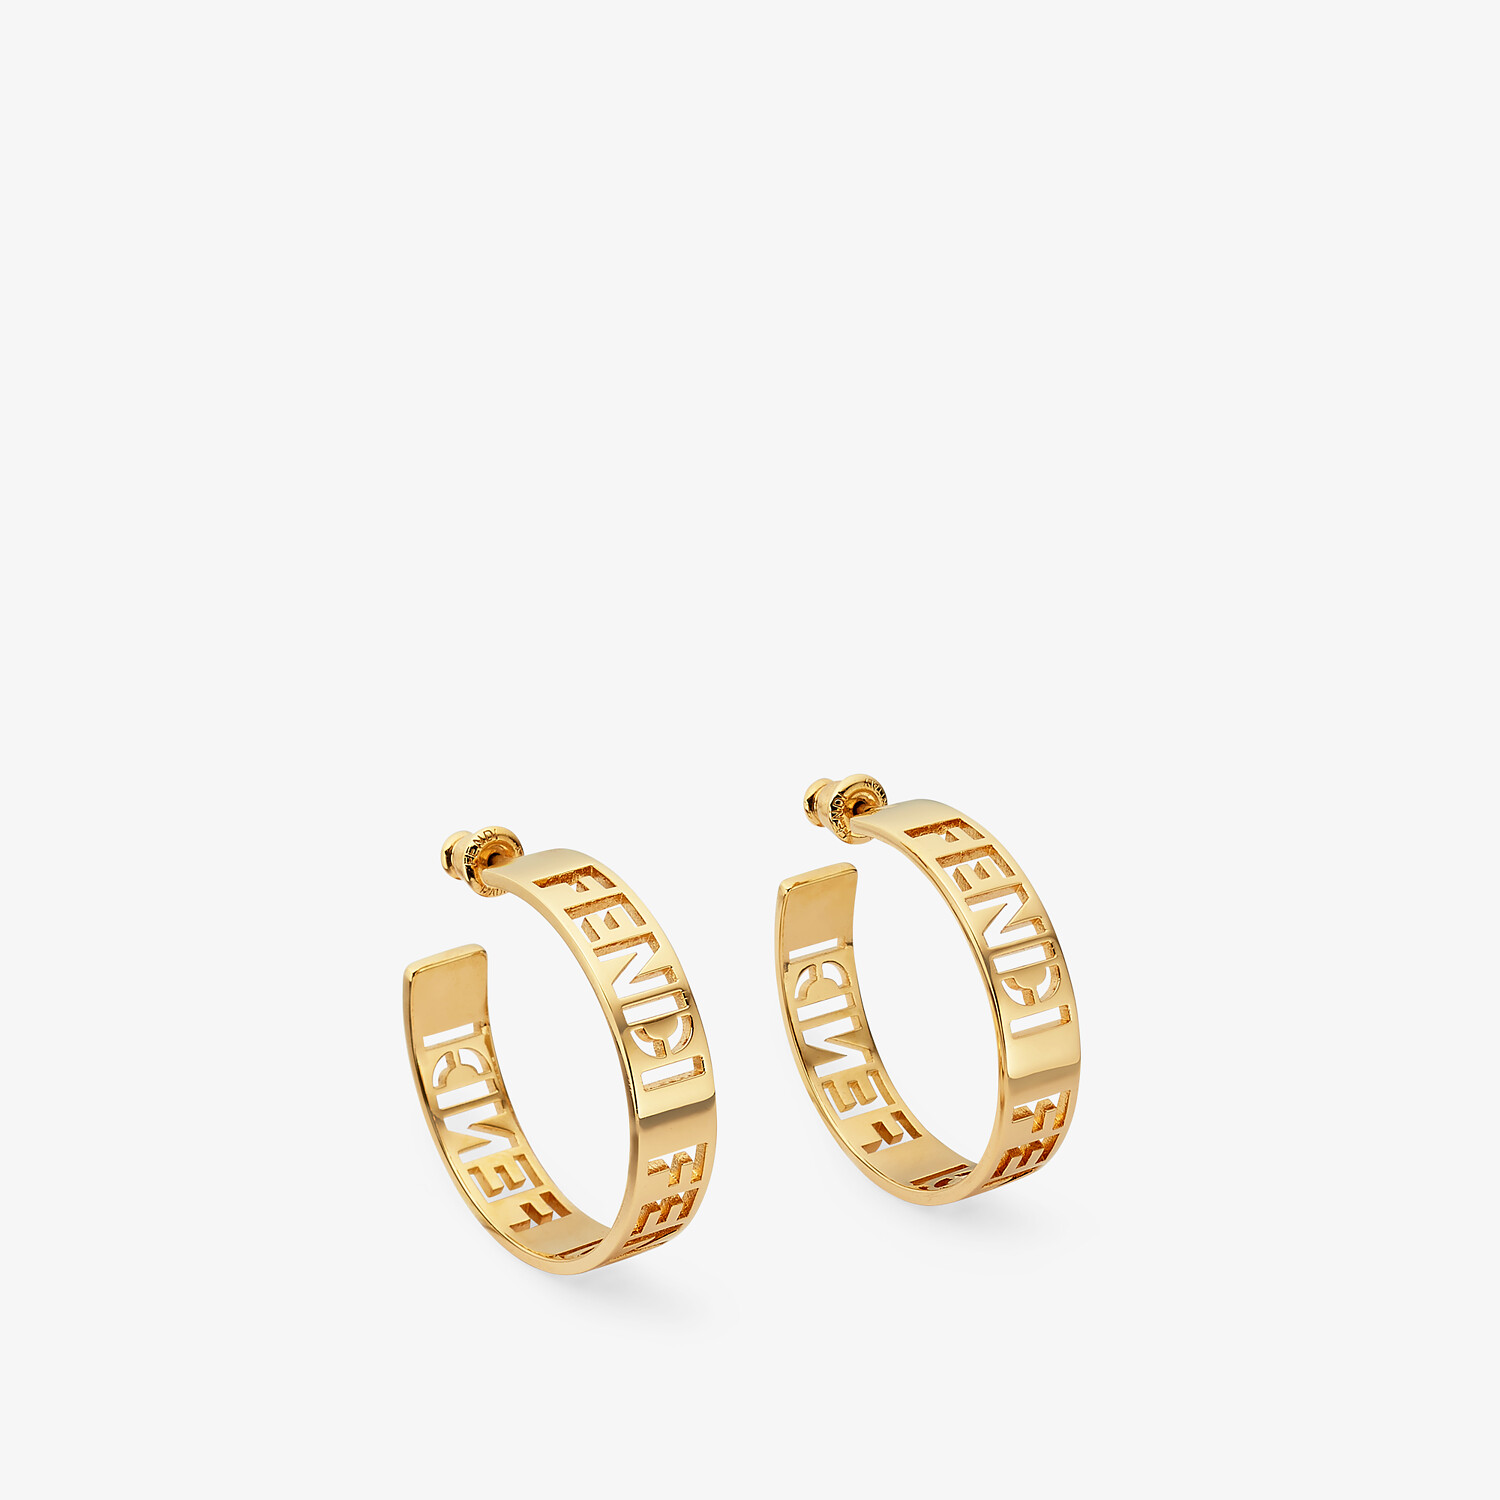 FENDI SMALL SIGNATURE EARRINGS - Gold-colored earrings - view 1 detail